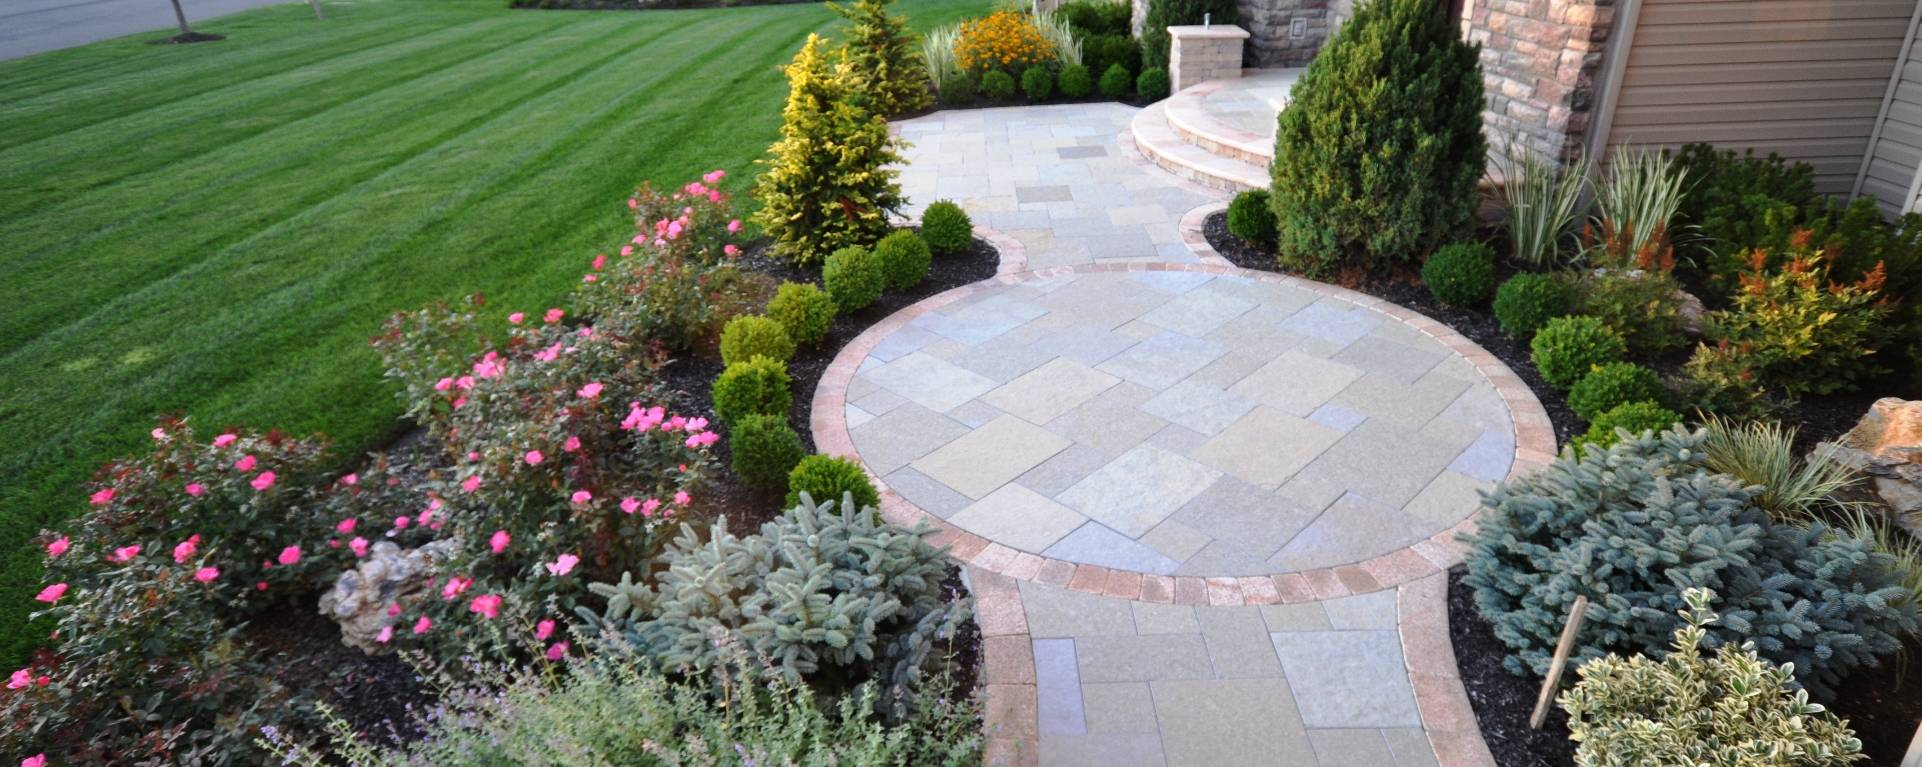 long island driveways walkways paver paving stones design